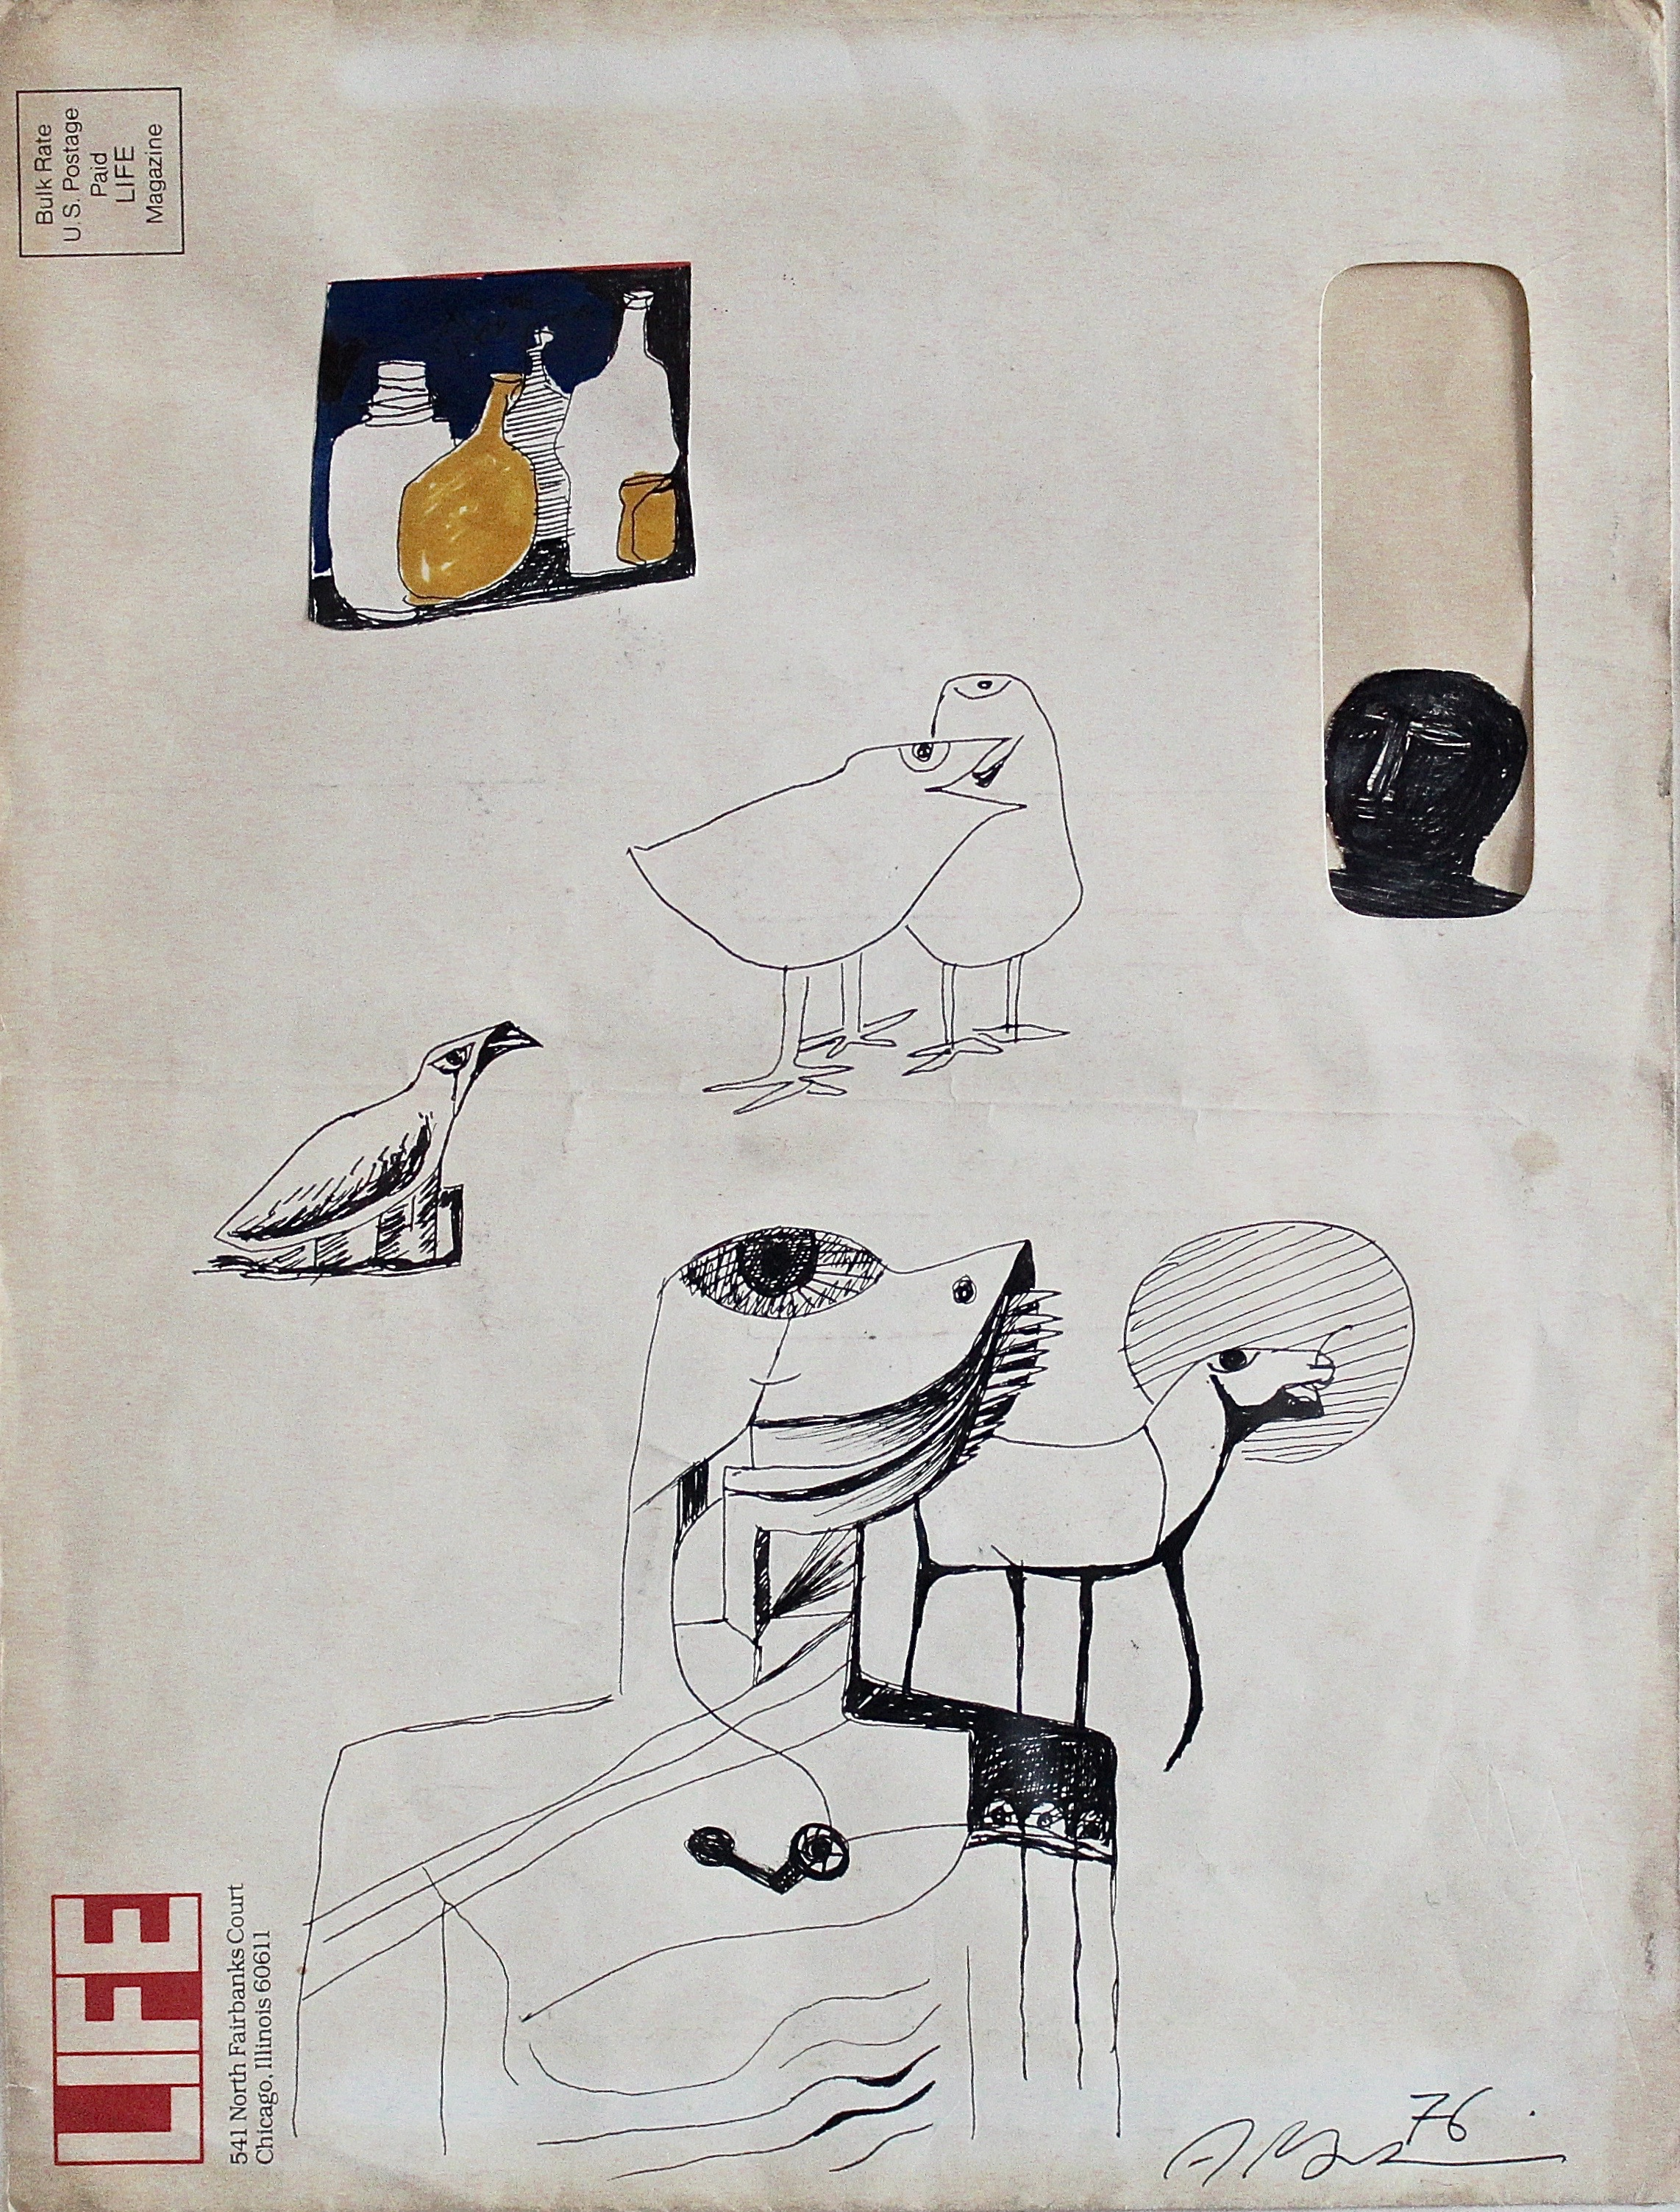 Ahmed Morsi, Untitled, 1976, Mixed media on paper, 23 x 30 cm.